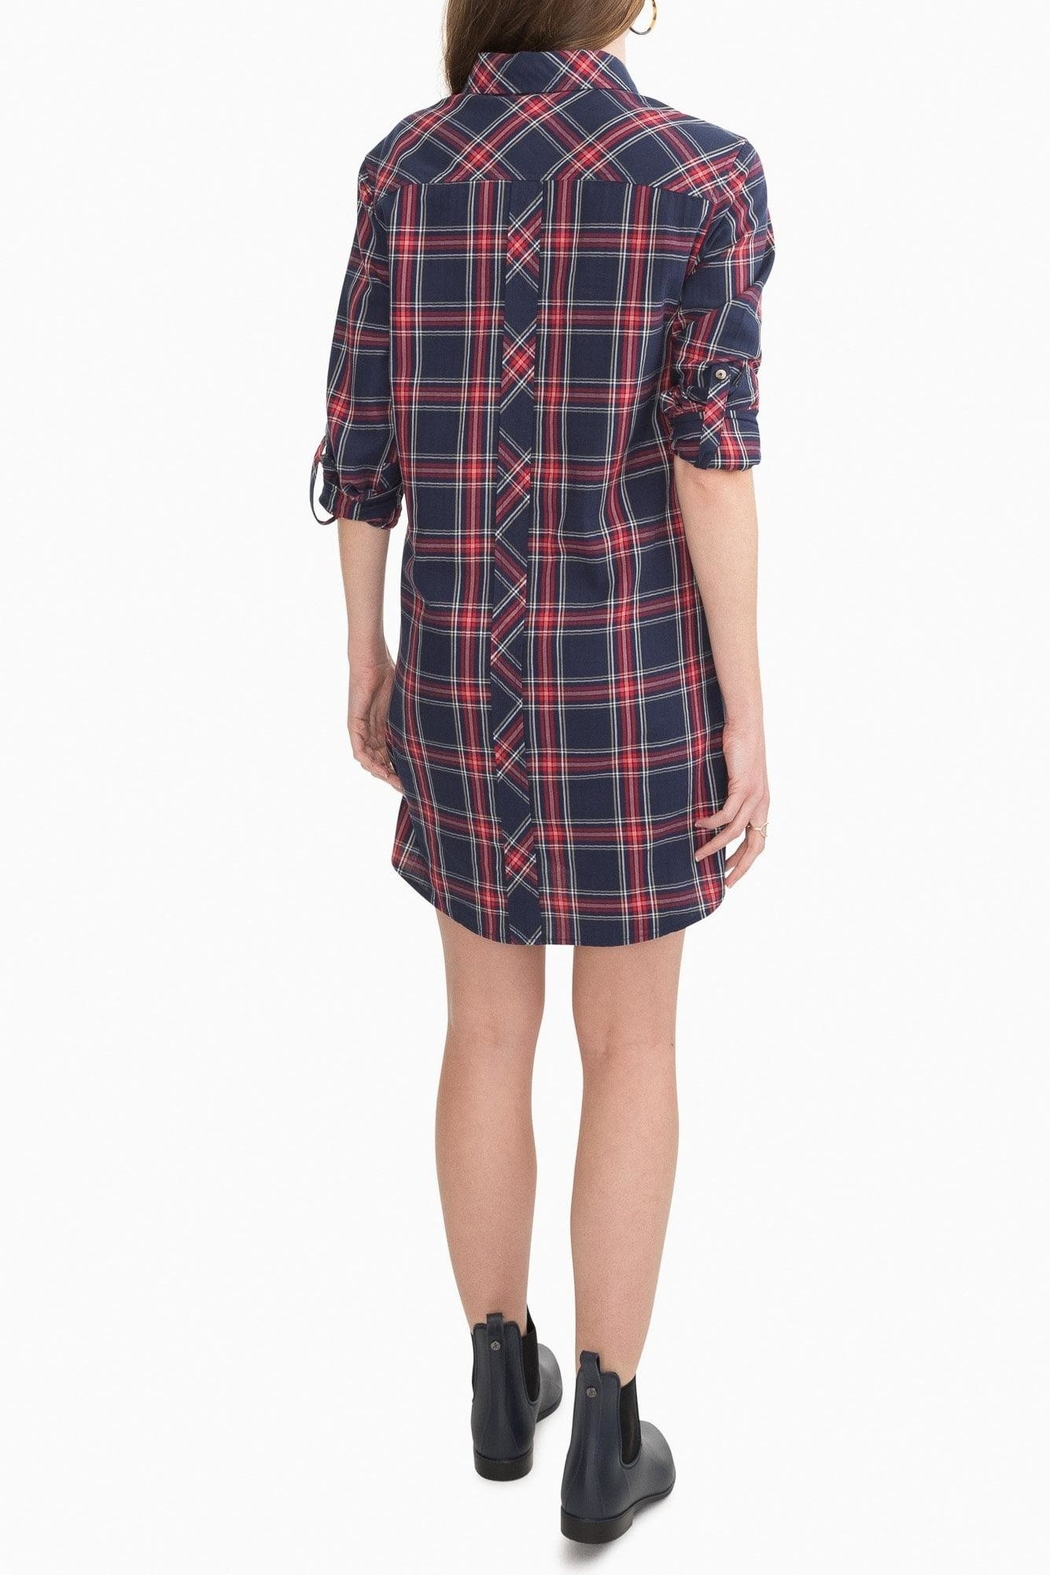 Southern Tide Alyssa Plaid Shirtdress - Front Full Image